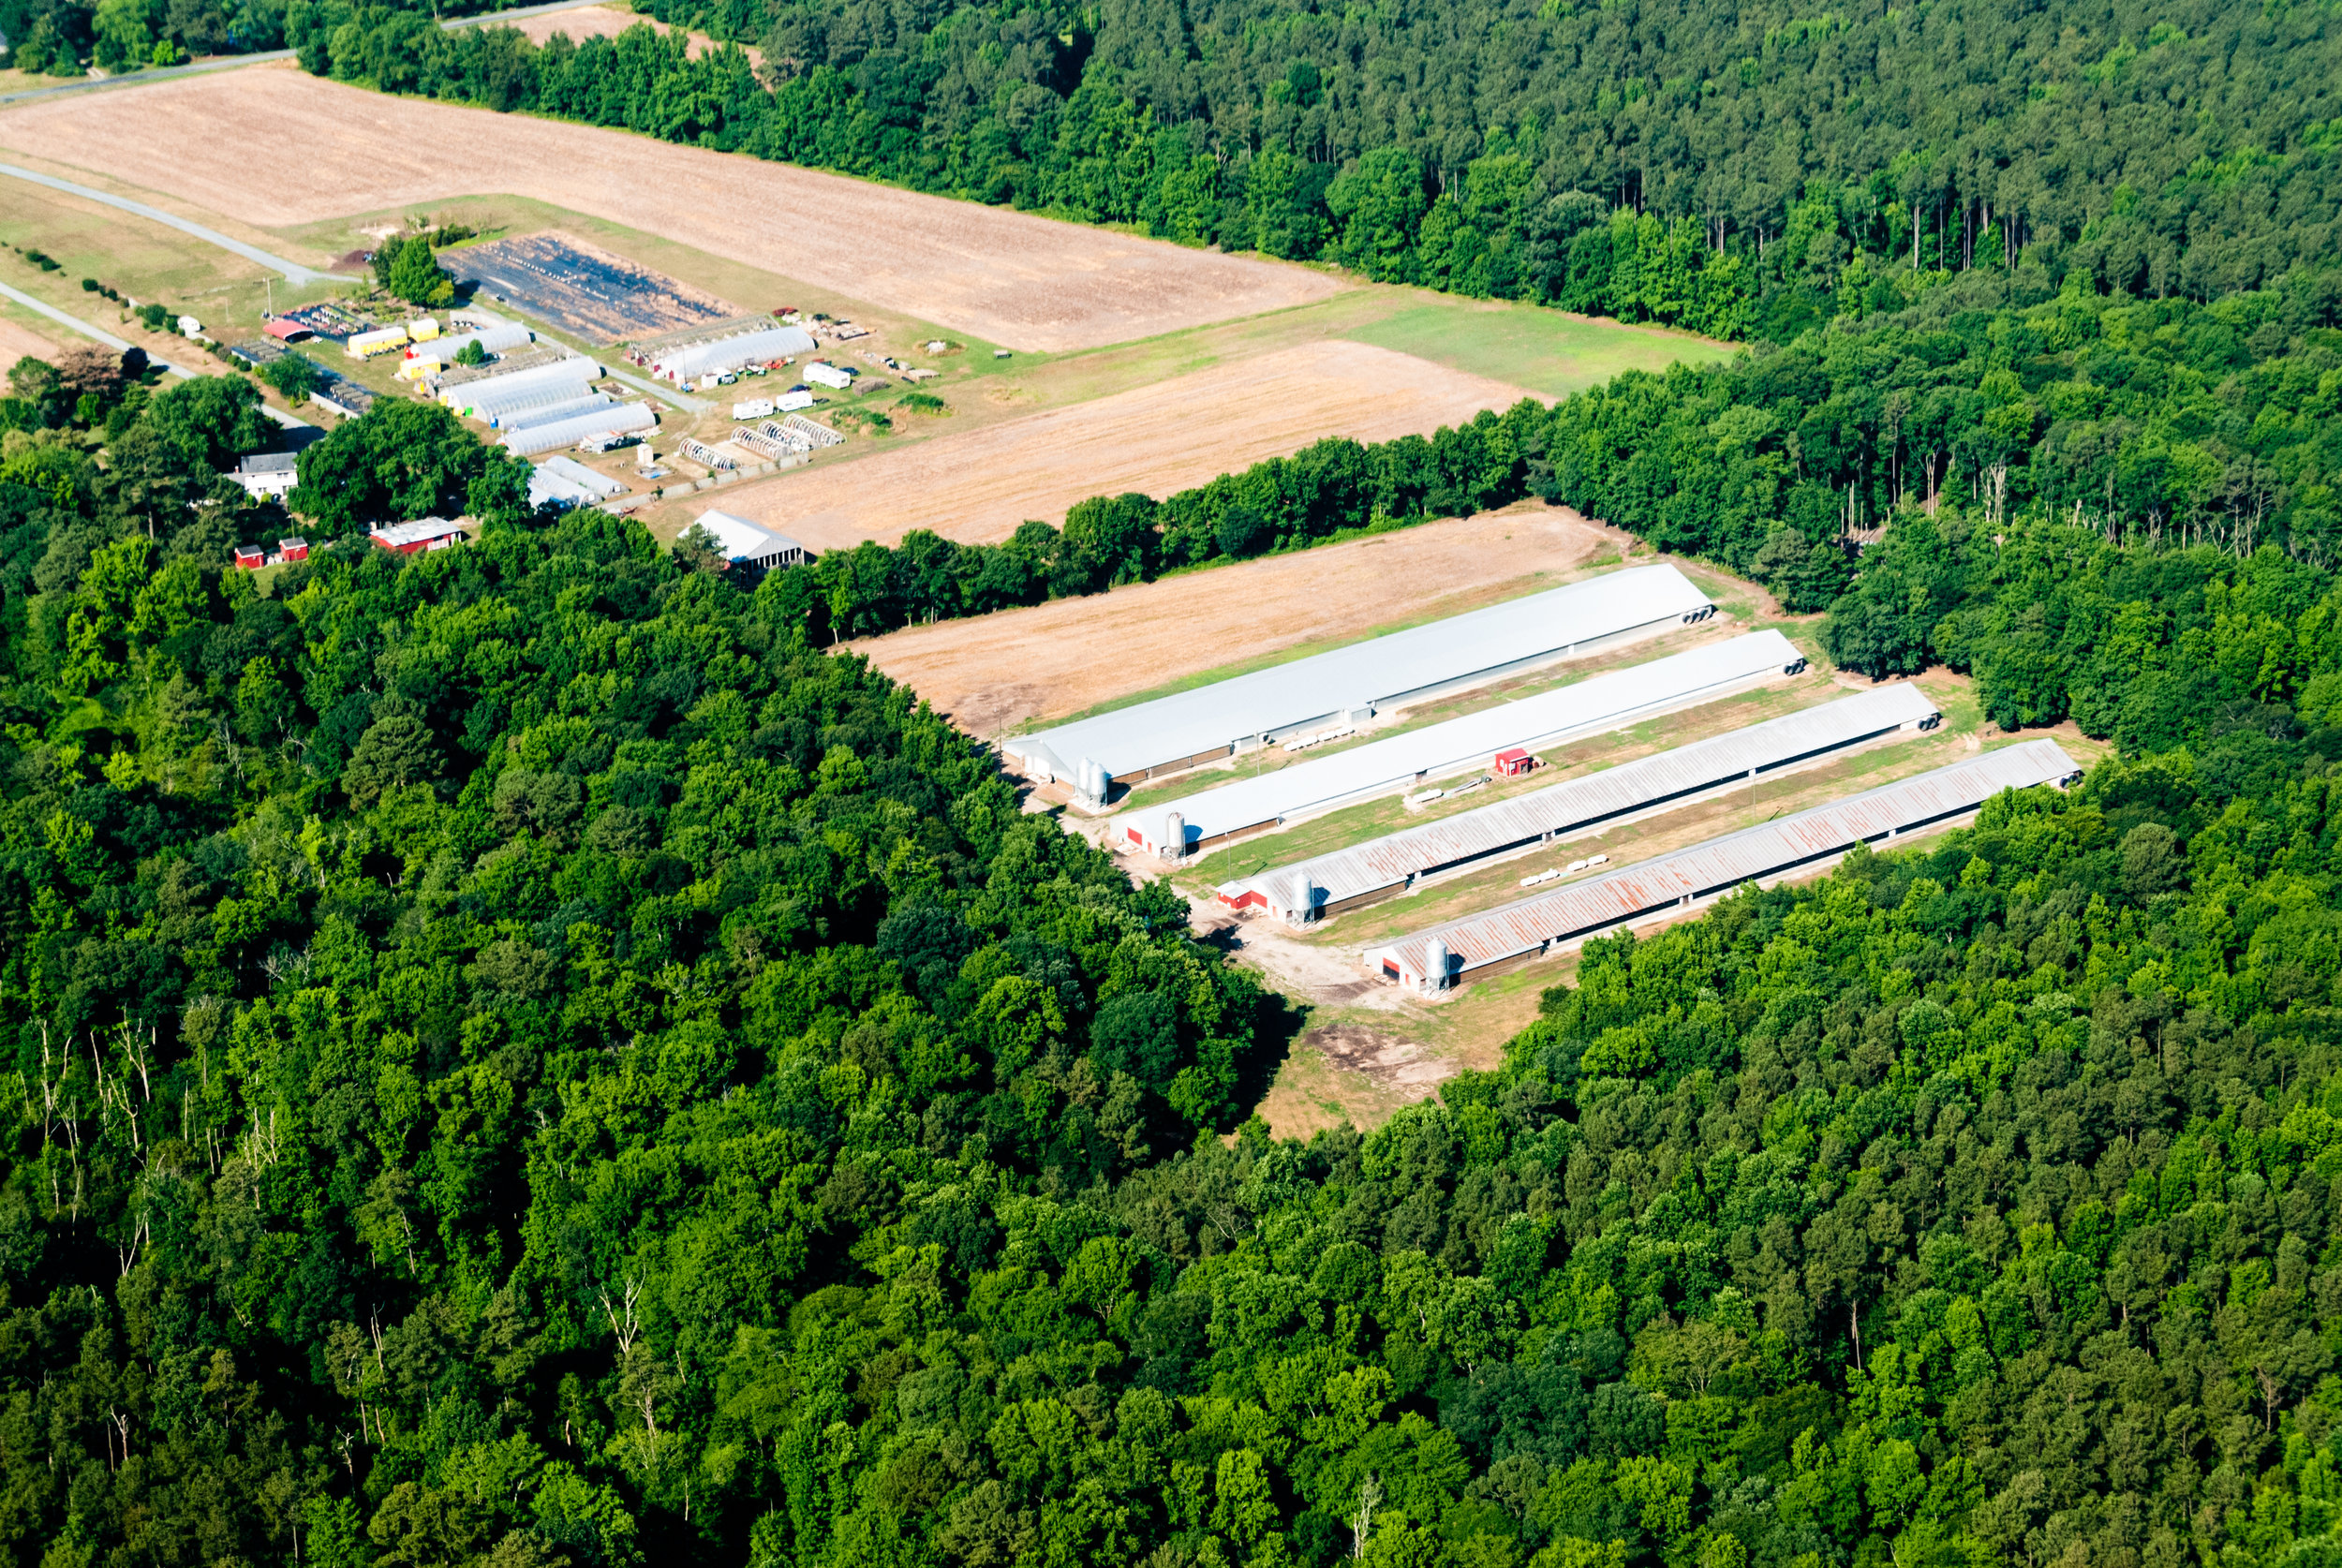 Poultry barns and a small farm are surrounded by forested land in Maryland. Image by Matt Rath/Chesapeake Bay Program.